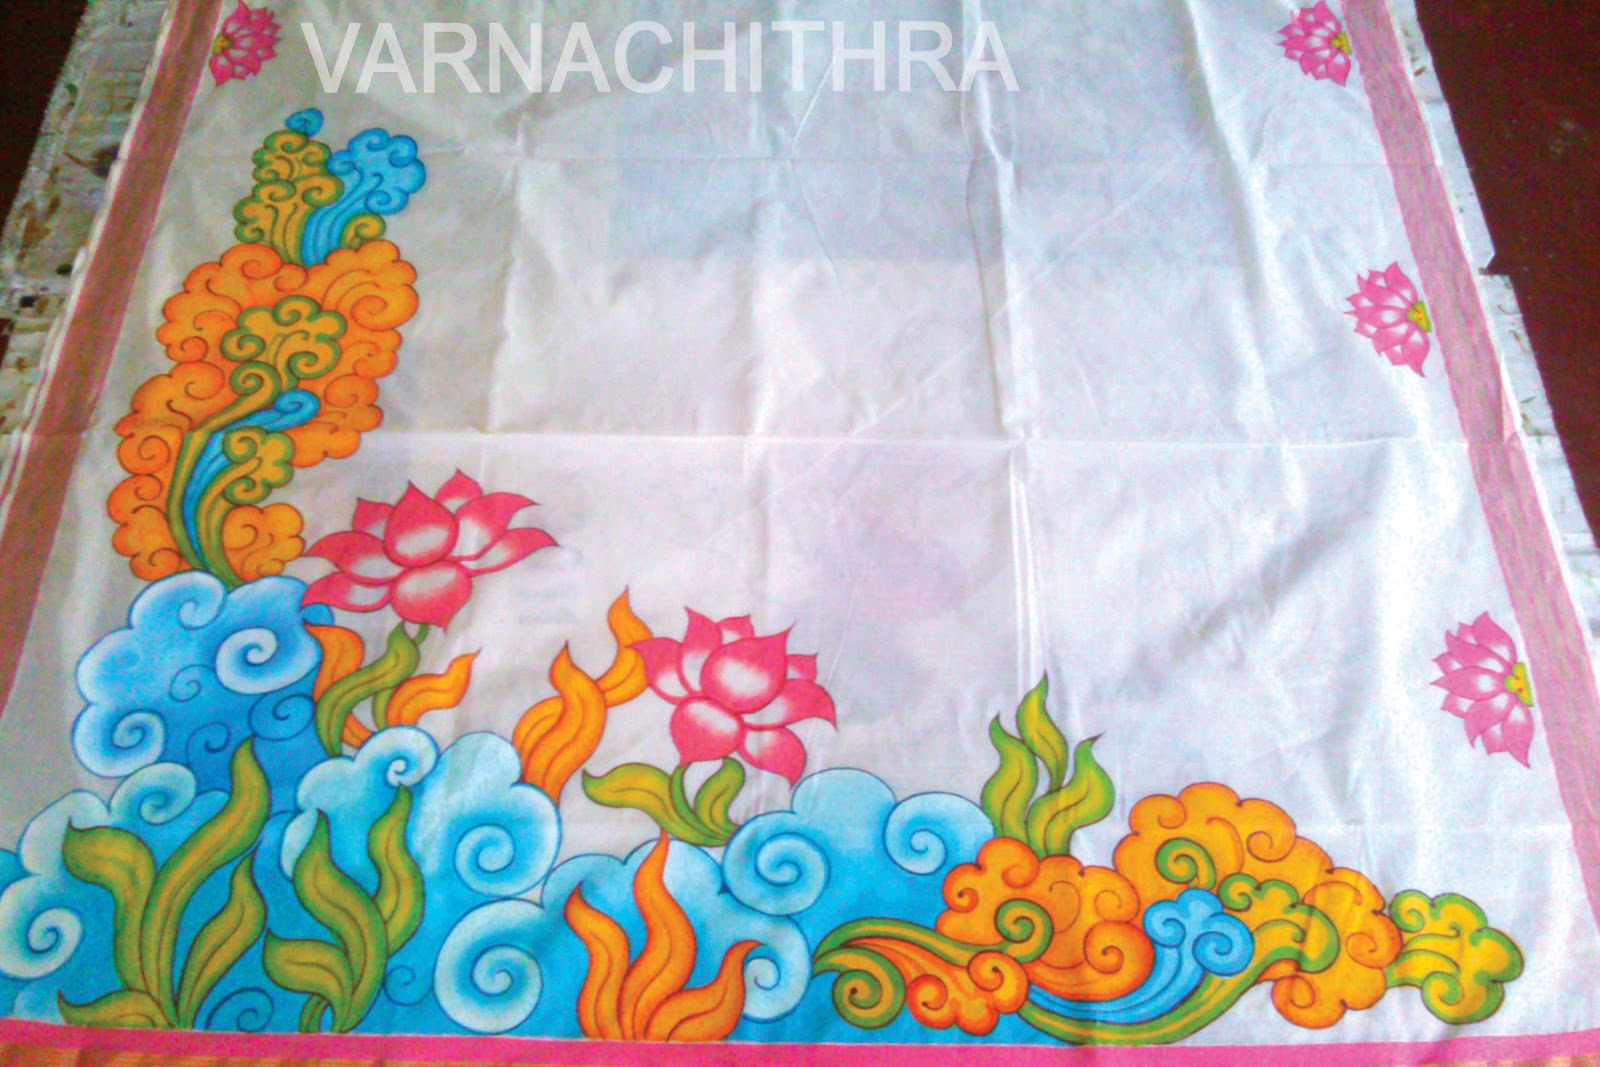 Varnachithra sarees mural for A mural is painted on a